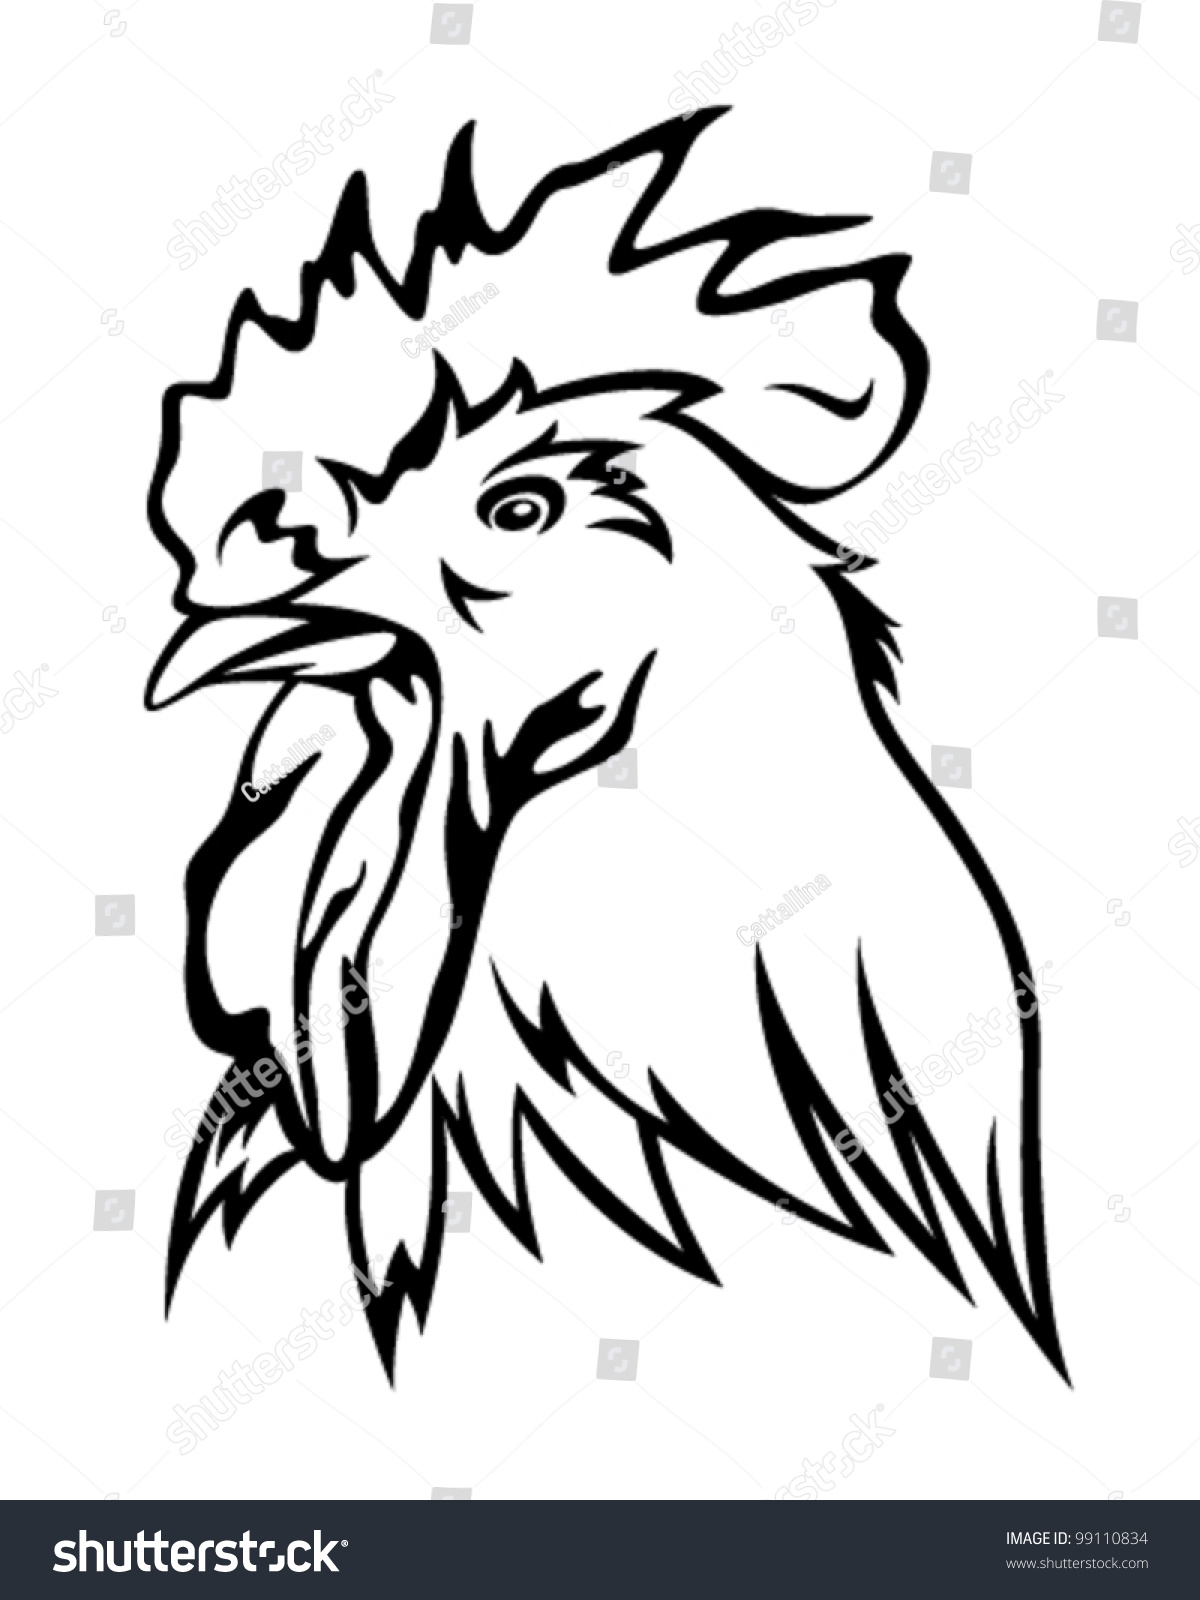 Drawing Rooster Head Images Stock Photos amp Vectors